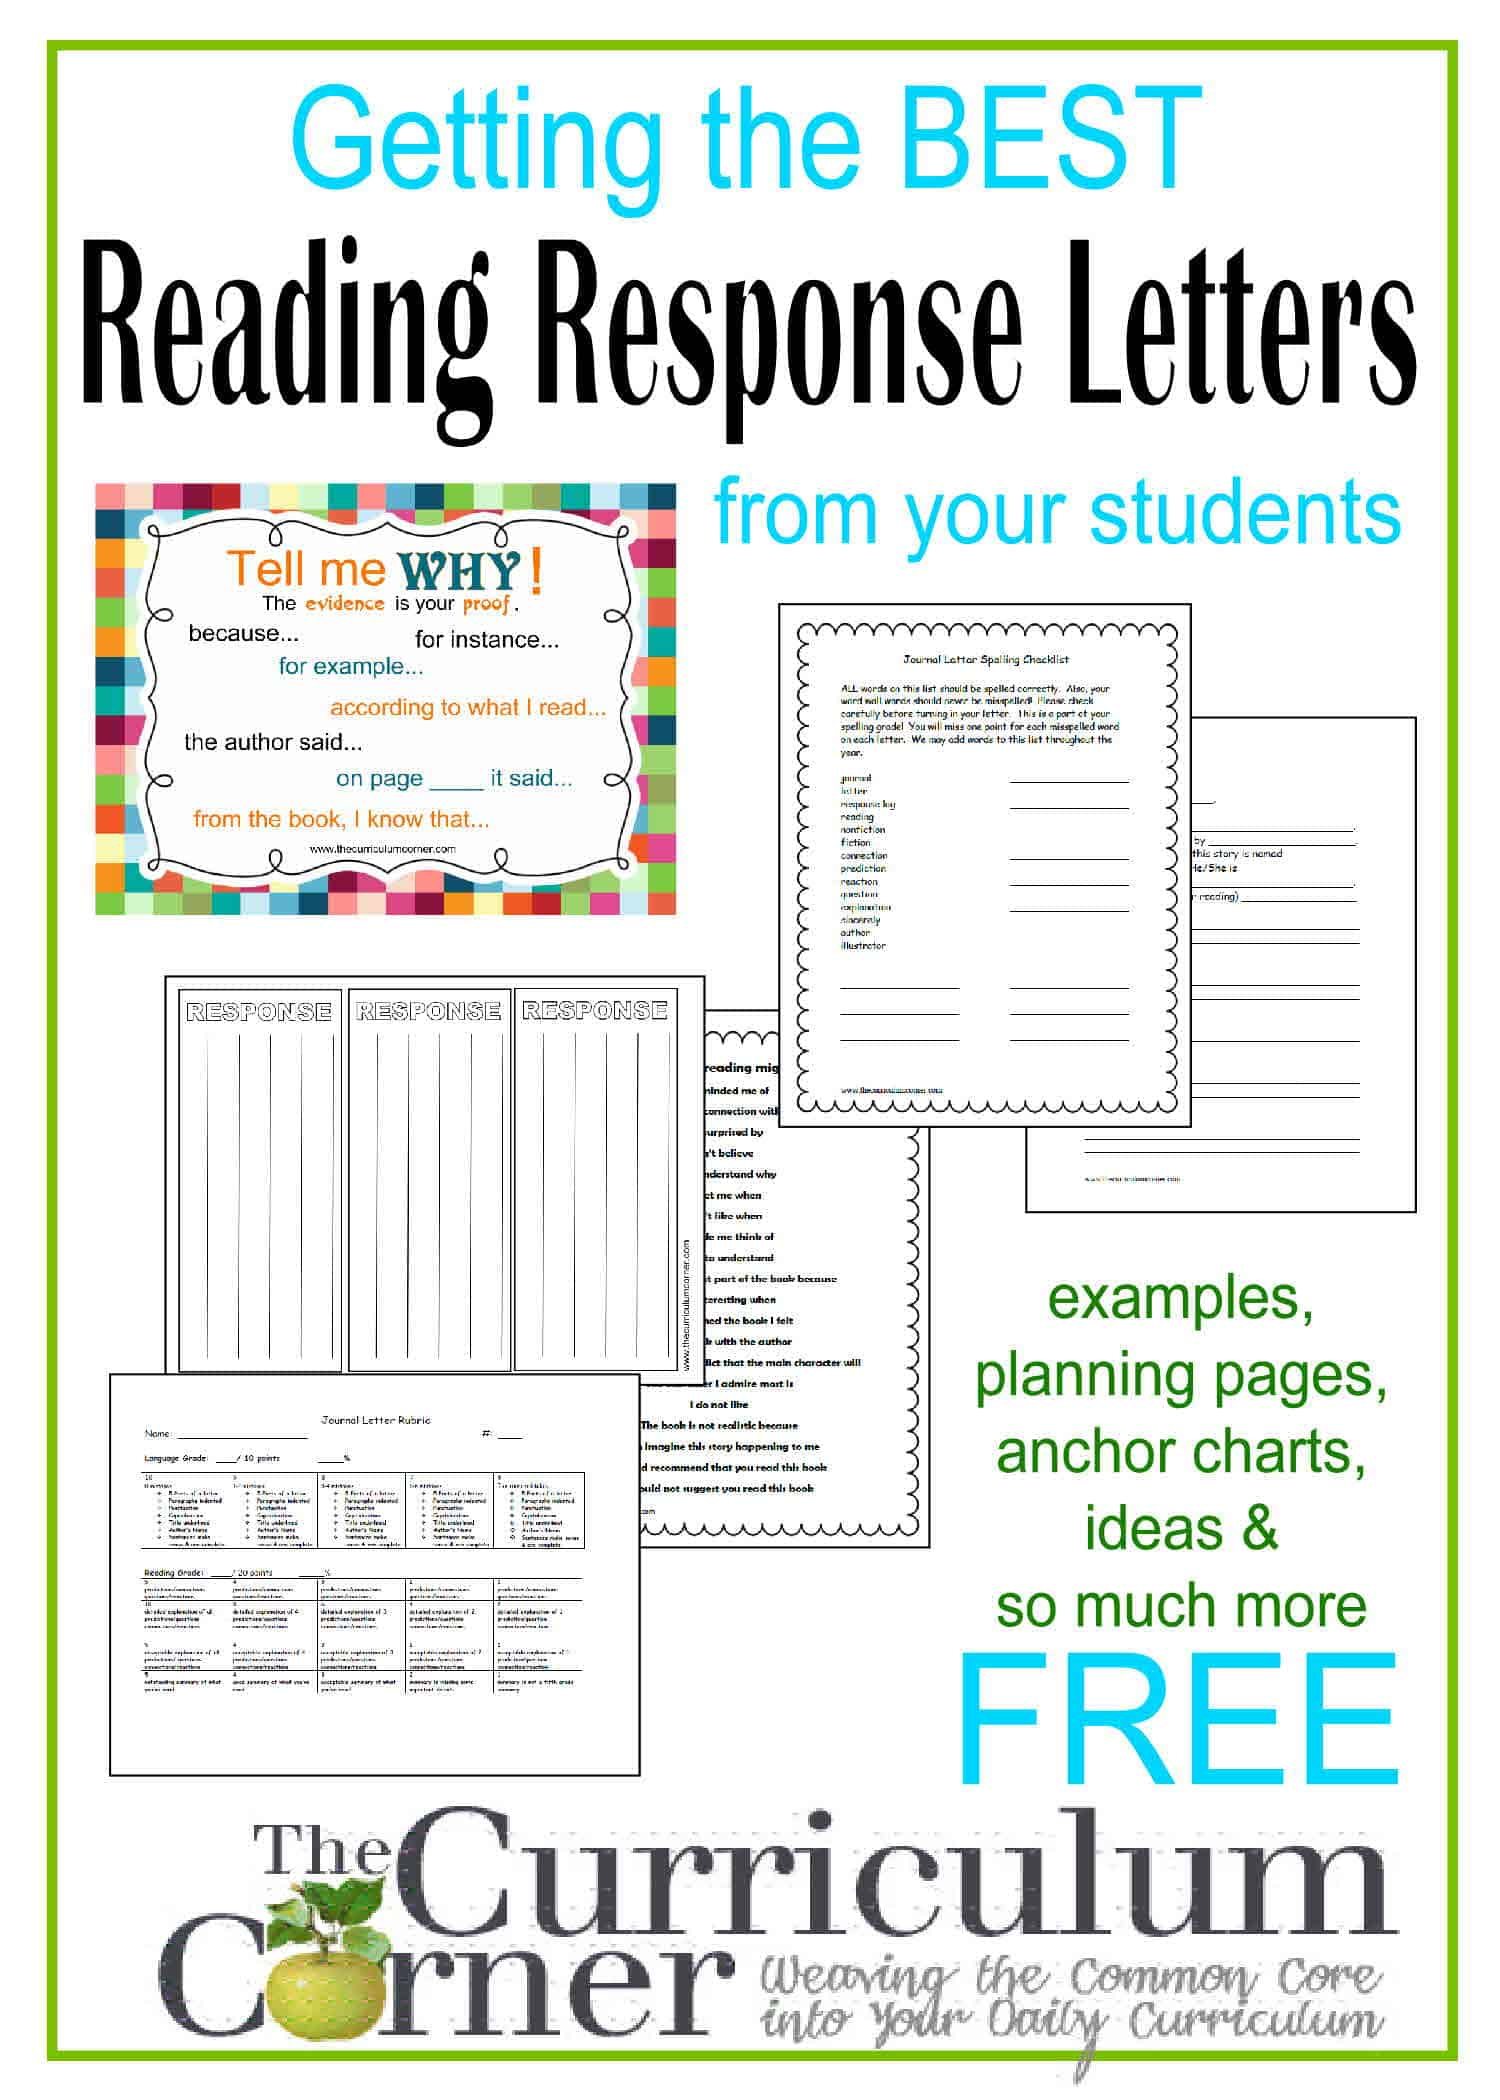 Reading Response Letters